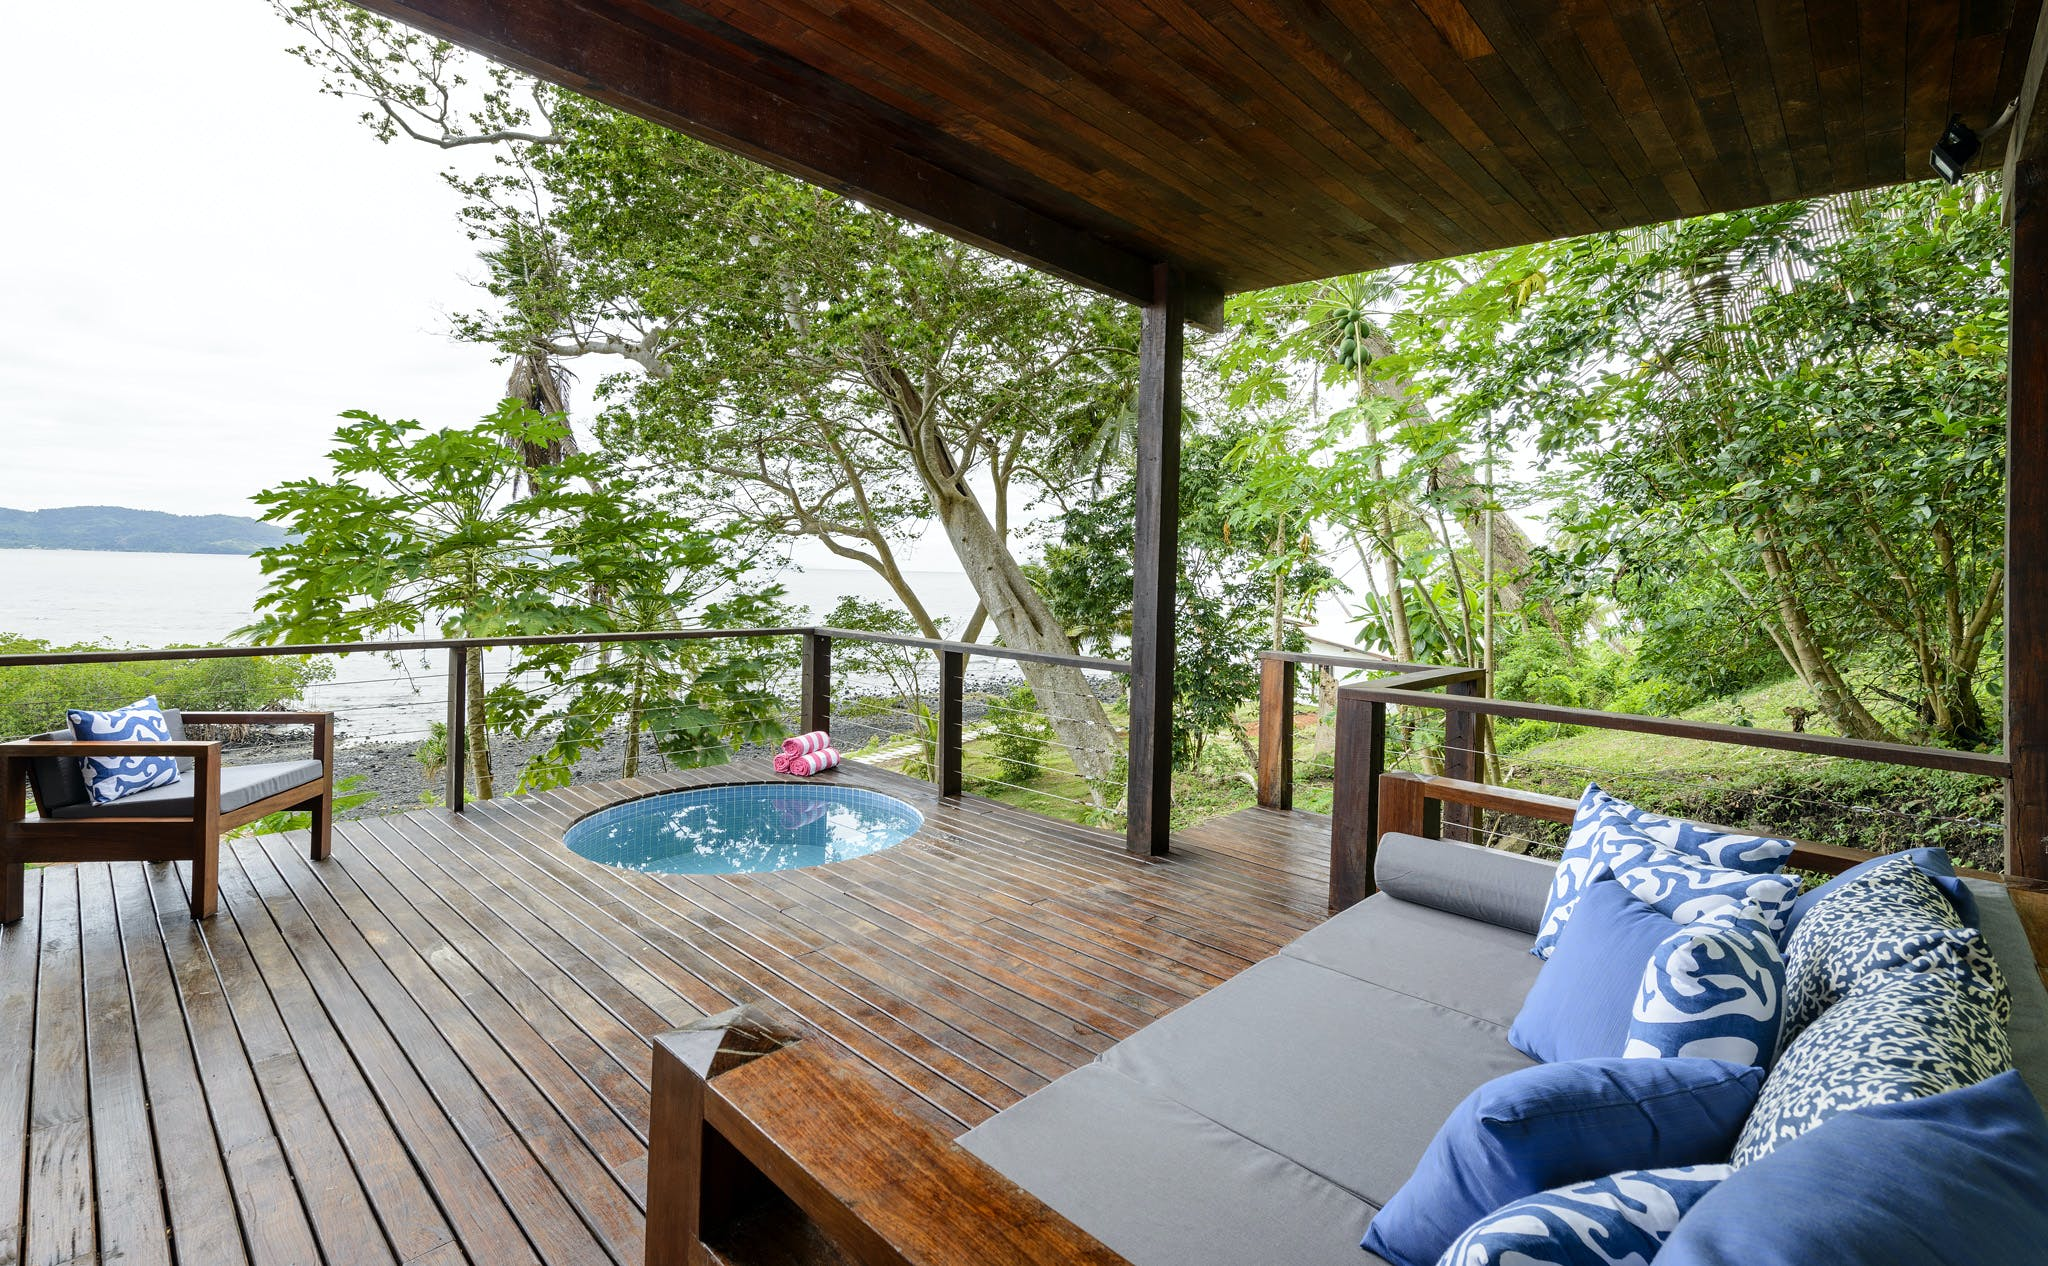 Deck, plunge pool and outdoor lounge in an Oceanfront Villa at The Remote Resort Fiji Islands.